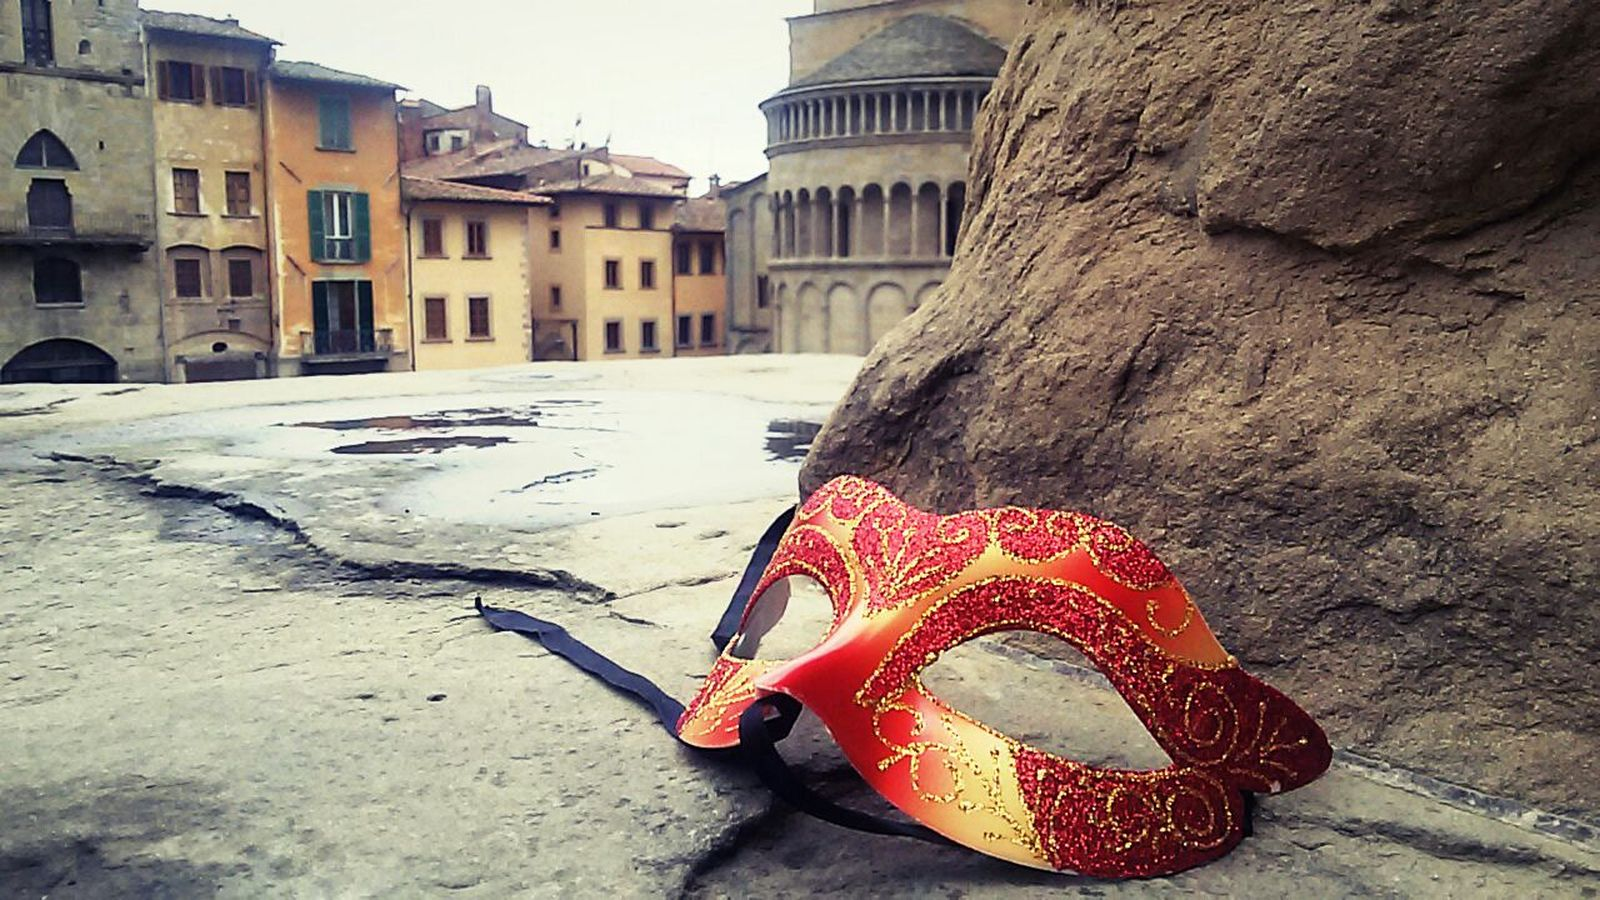 Arezzo - The legend of the enamoured bandit